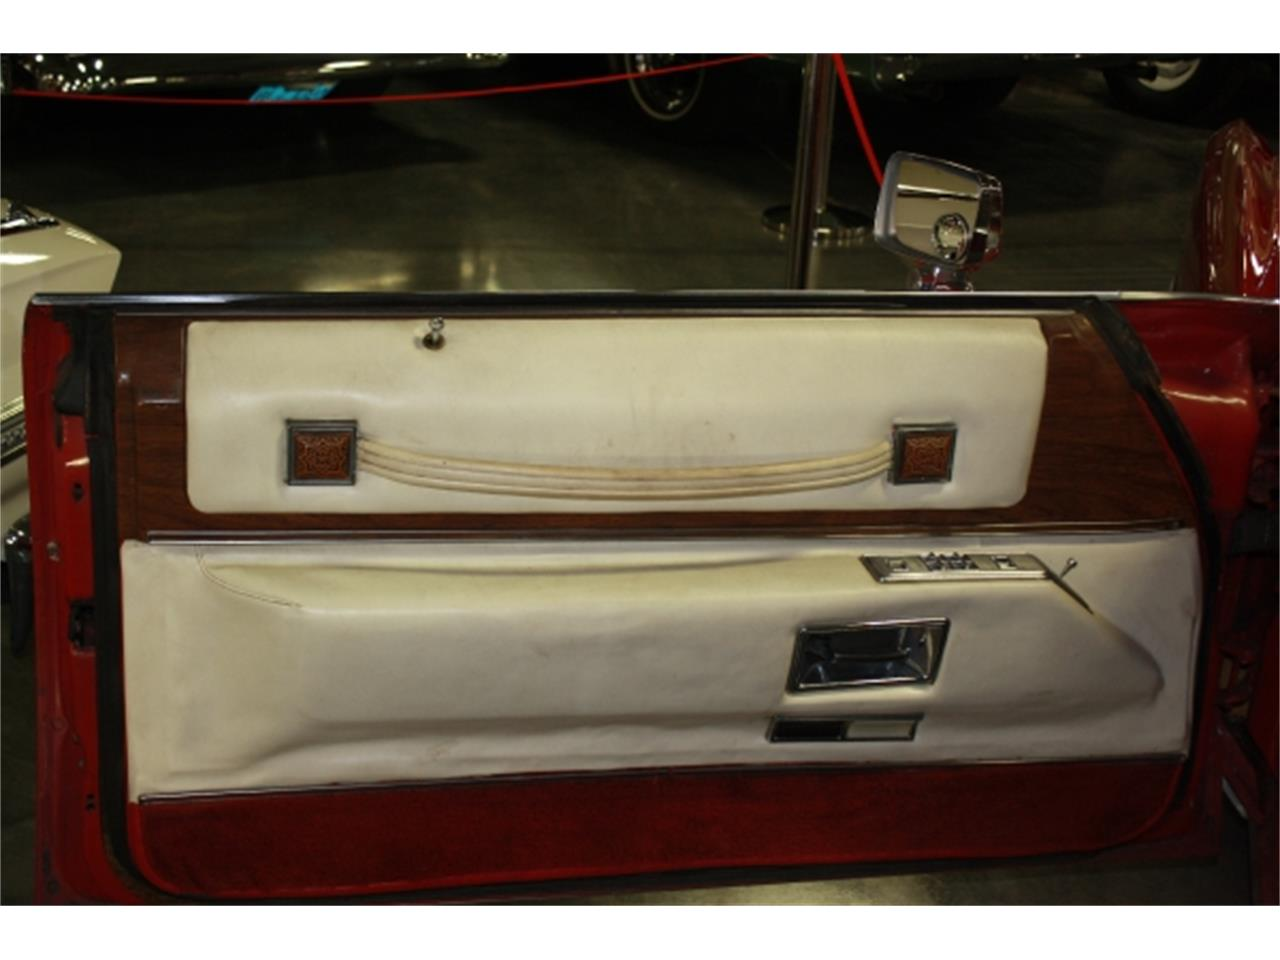 Large Picture of '74 Cadillac Eldorado located in Branson Missouri - $16,600.00 - DSCQ